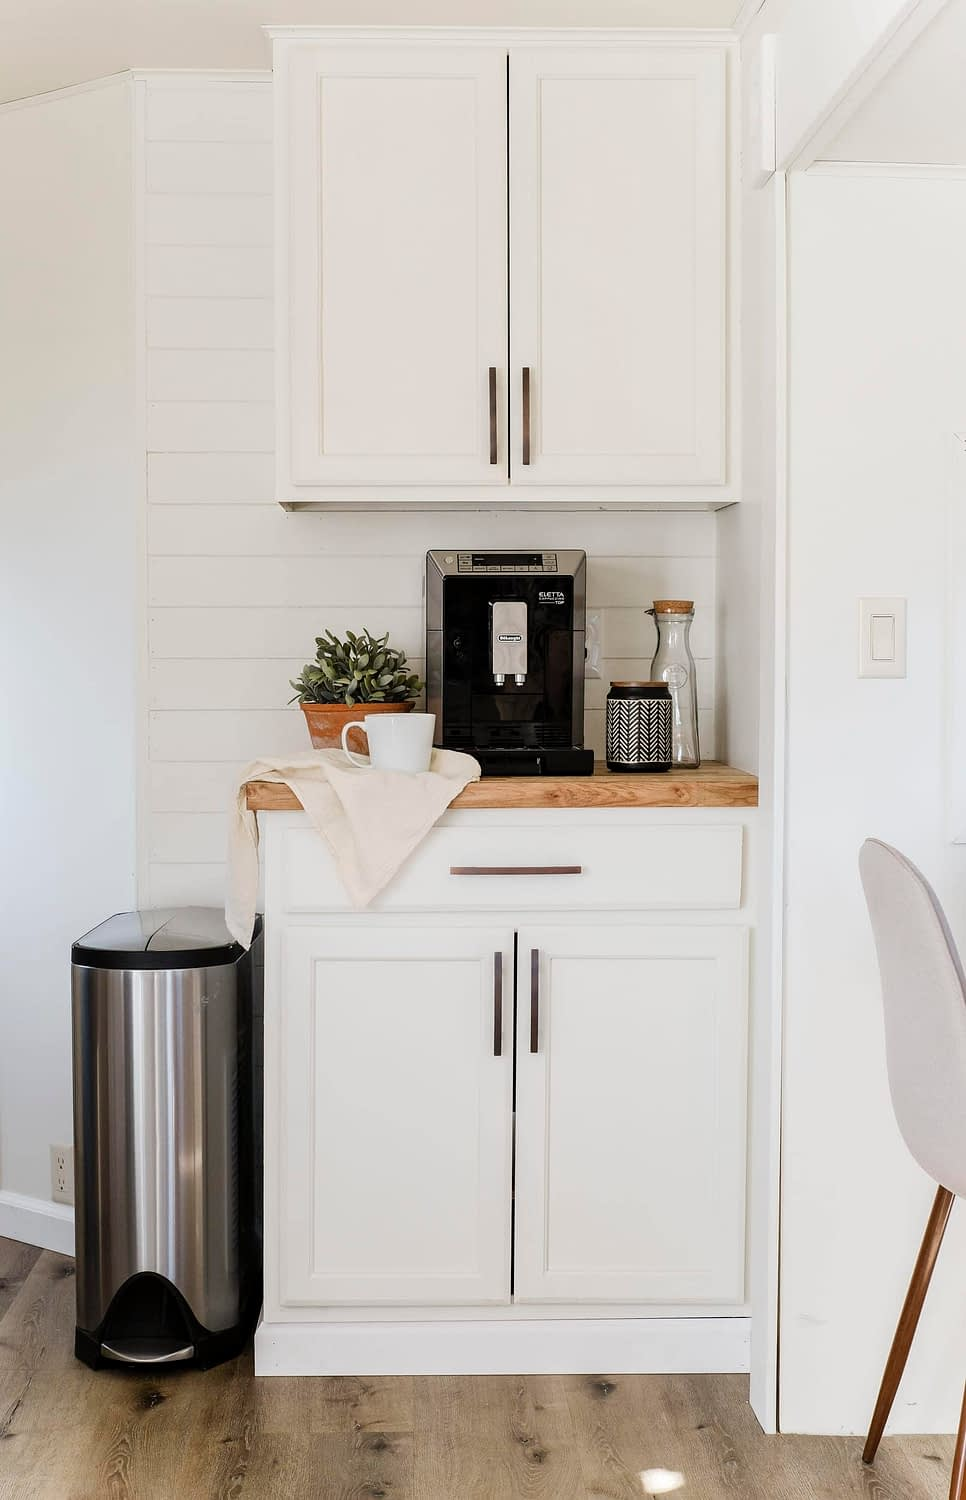 RV Kitchen remodel with a designated coffee bar that has an espresso maker